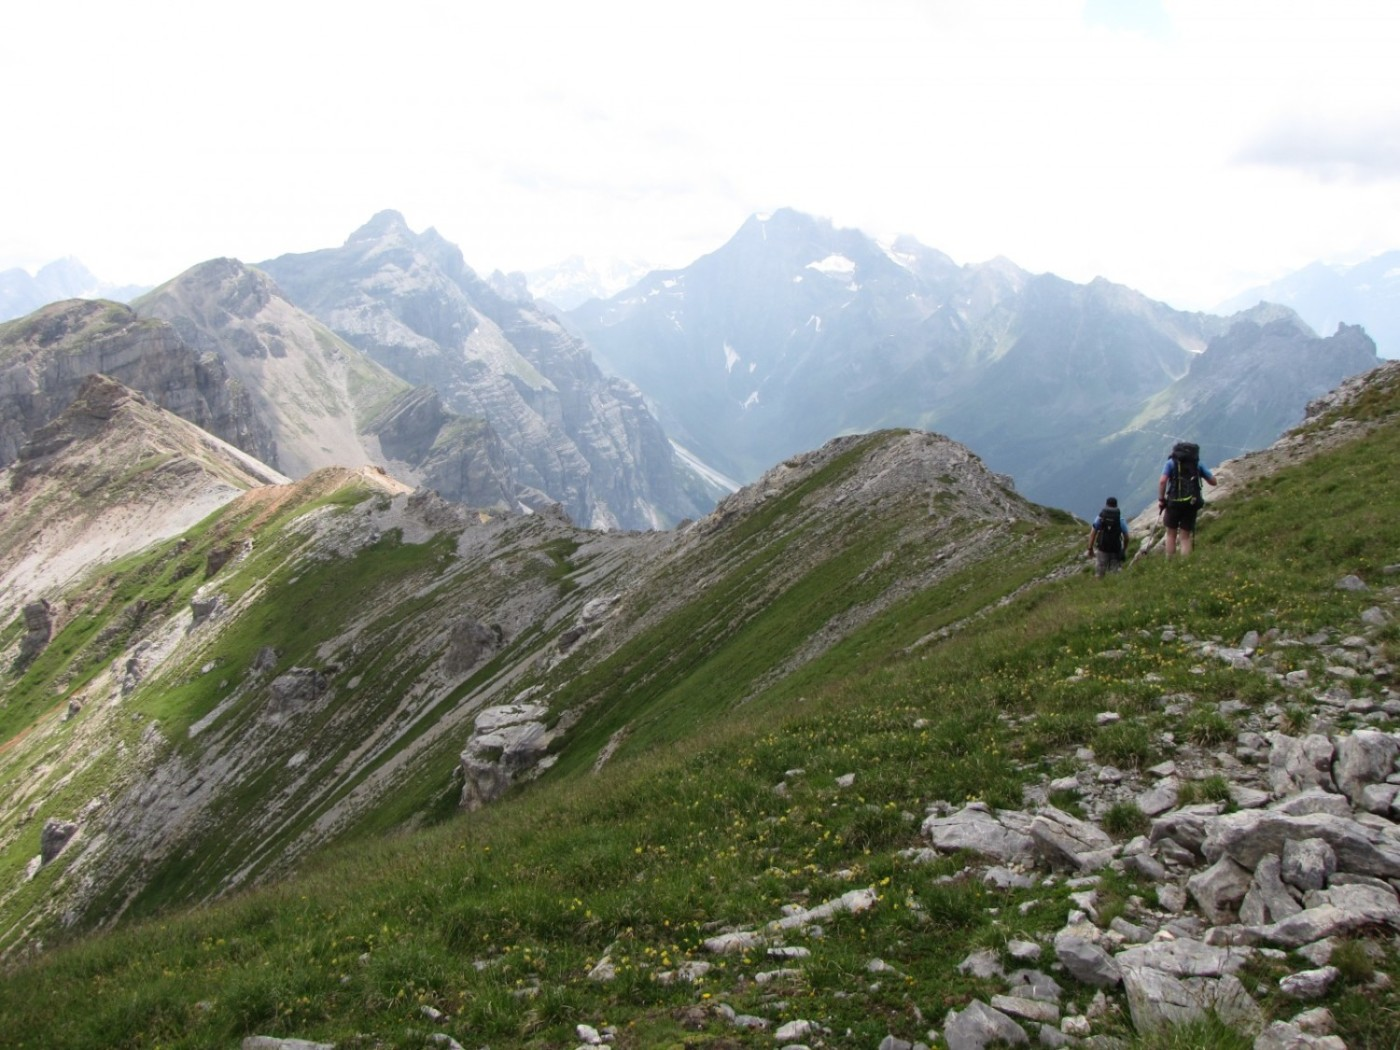 Ridge from the Kesselspitze to the Wasenwand